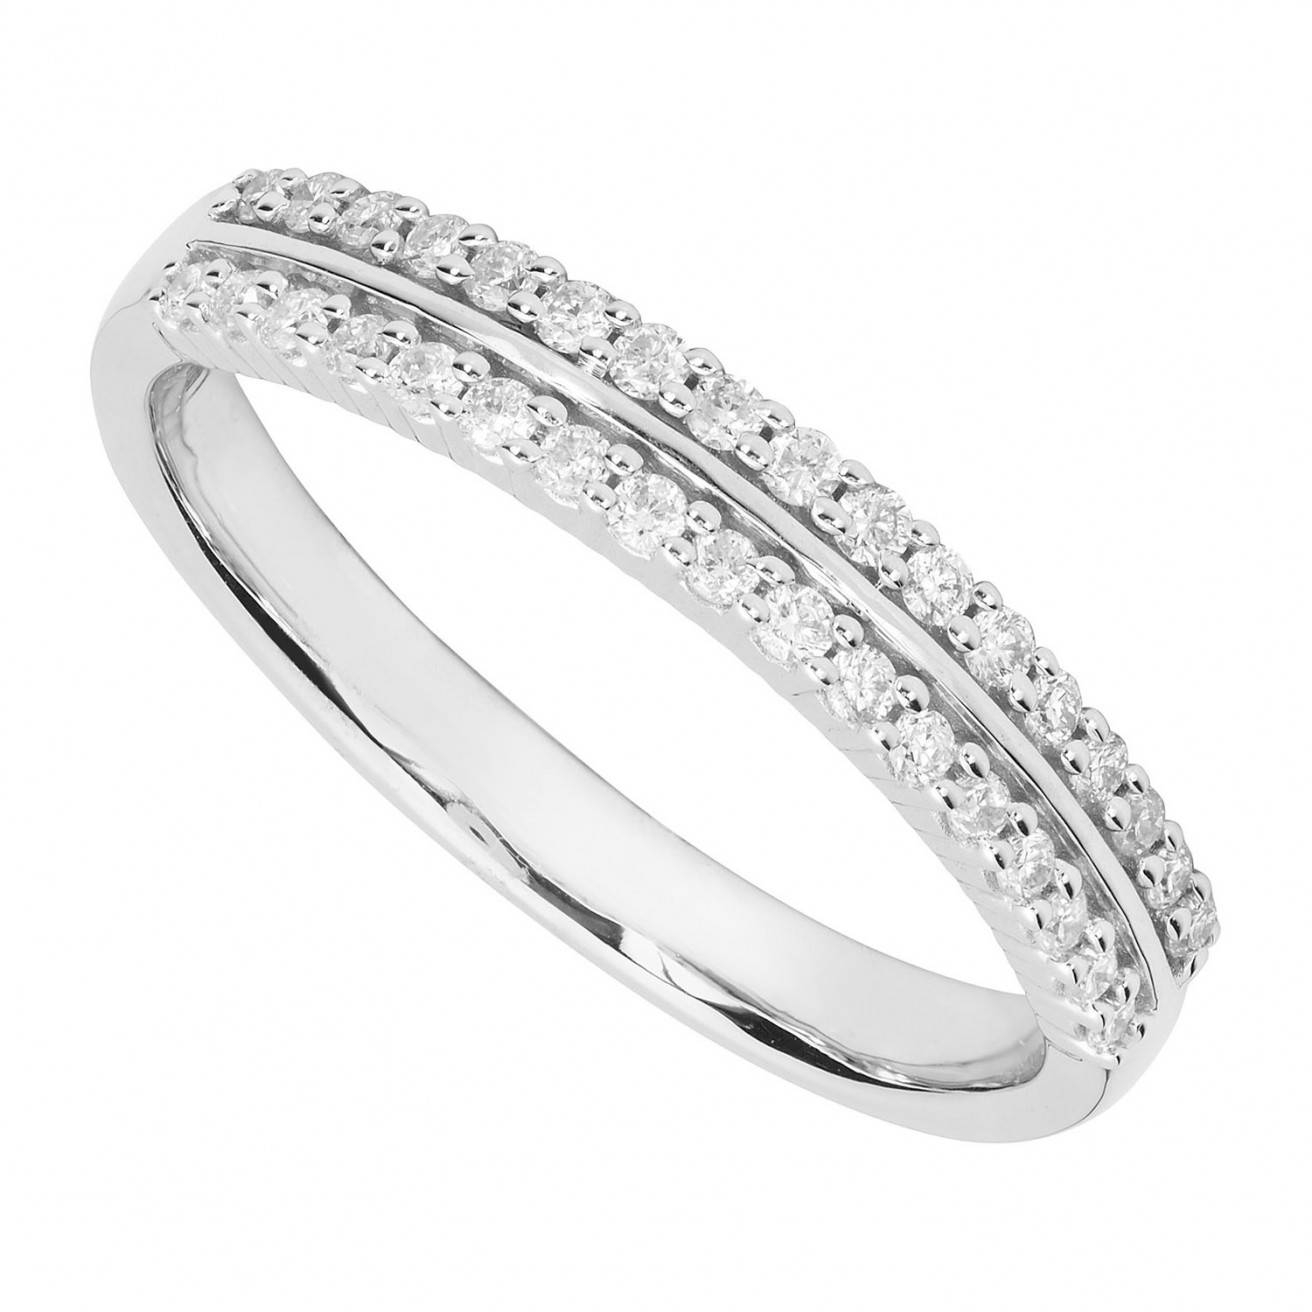 Buy White Gold Wedding Rings Online – Fraser Hart Intended For Ladies White Gold Diamond Wedding Bands (View 3 of 15)